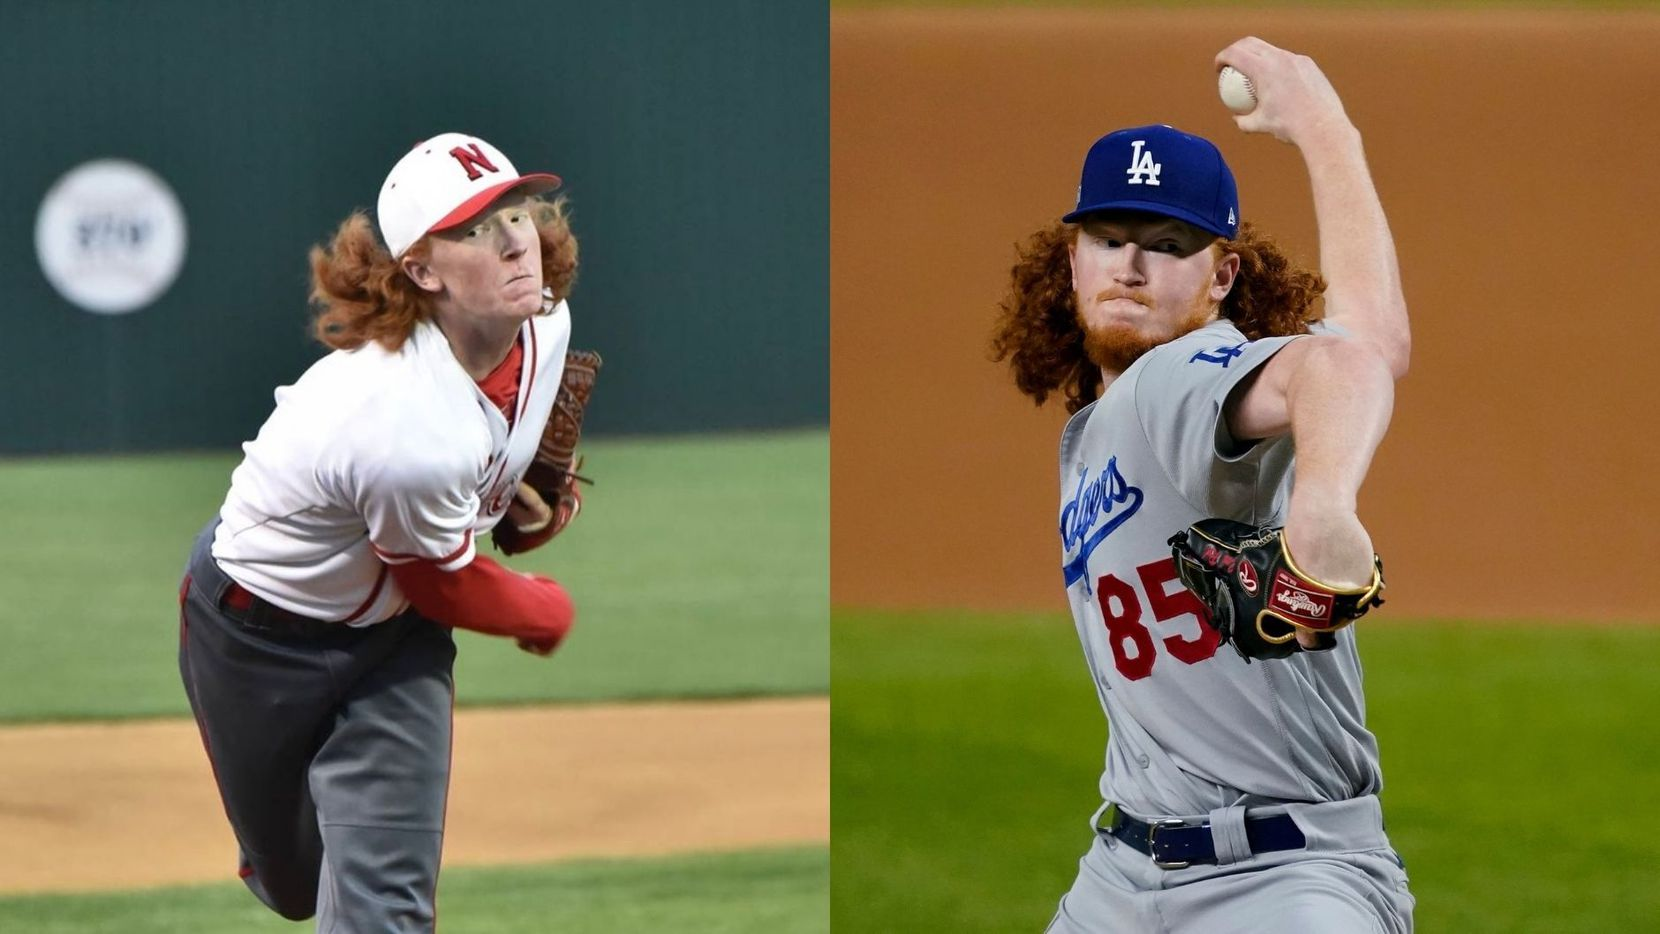 Dustin May pitching in high school (left) and Dustin May pitching for the Dodgers (right). (Photo credit: Suzanne May, left; AP Photo/Tony Gutierrez, right)